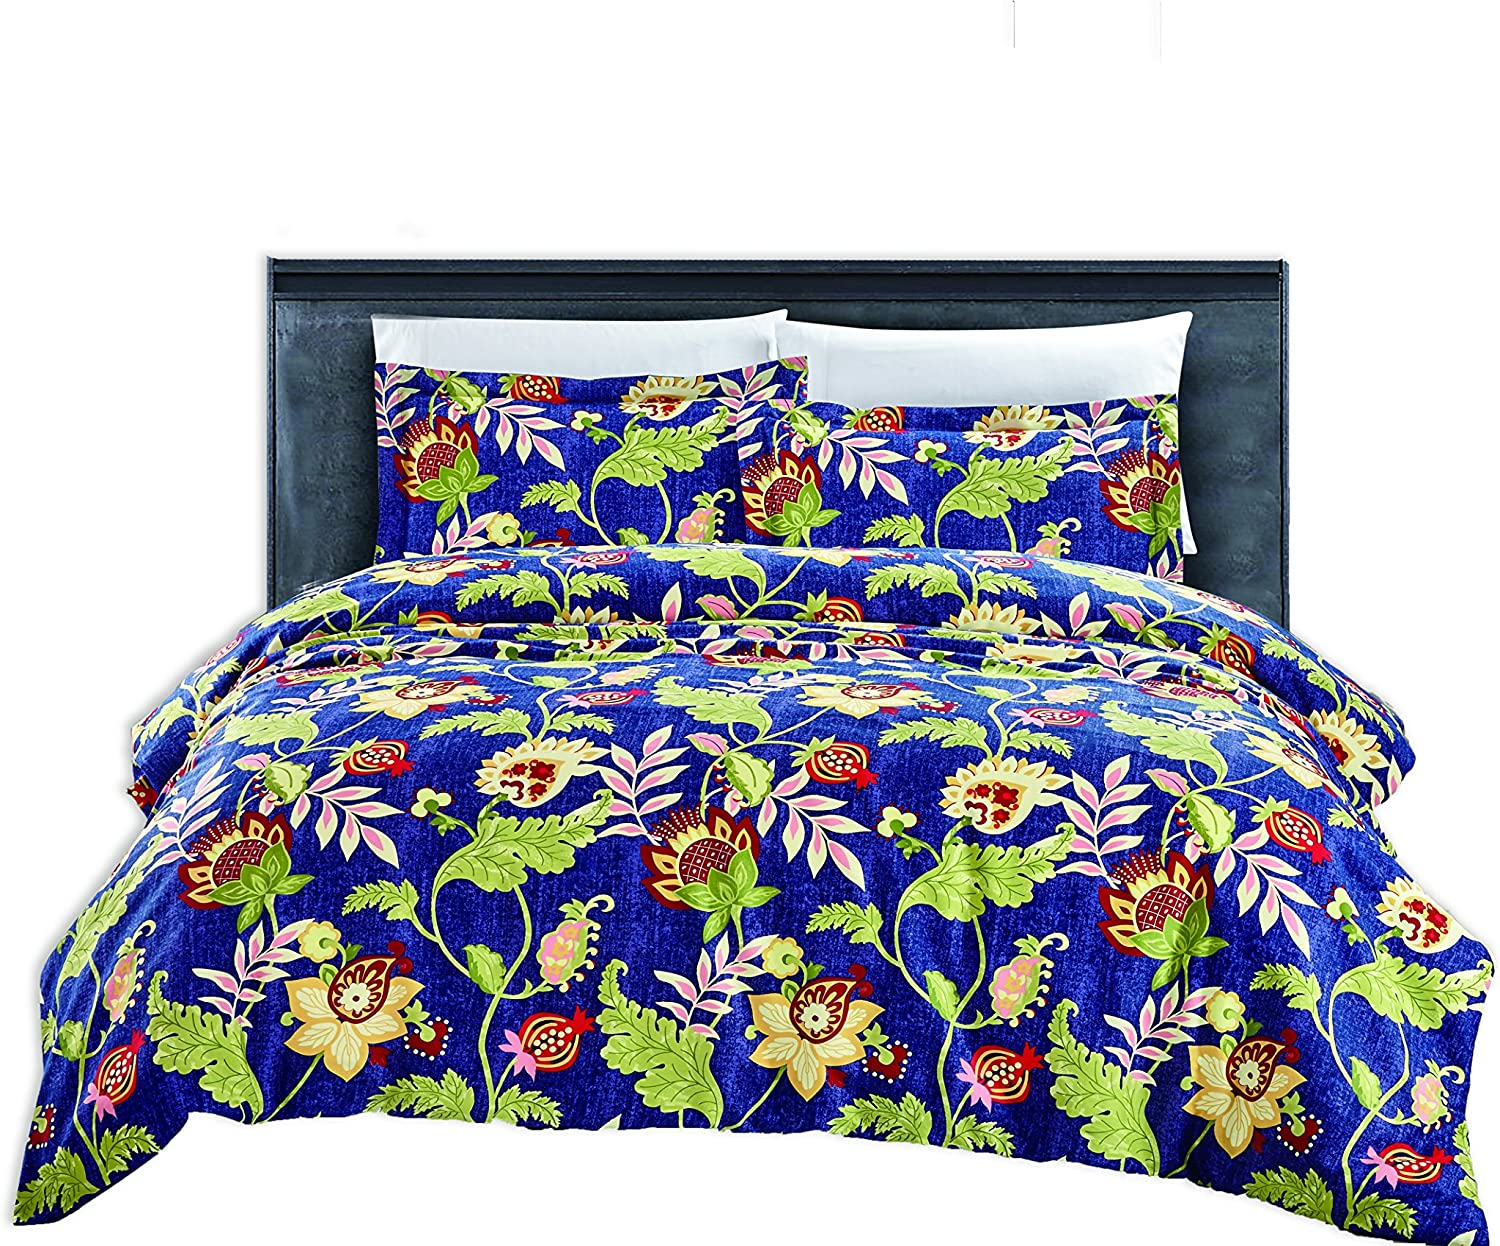 91 Best Great Quilt and Bedding Ideas